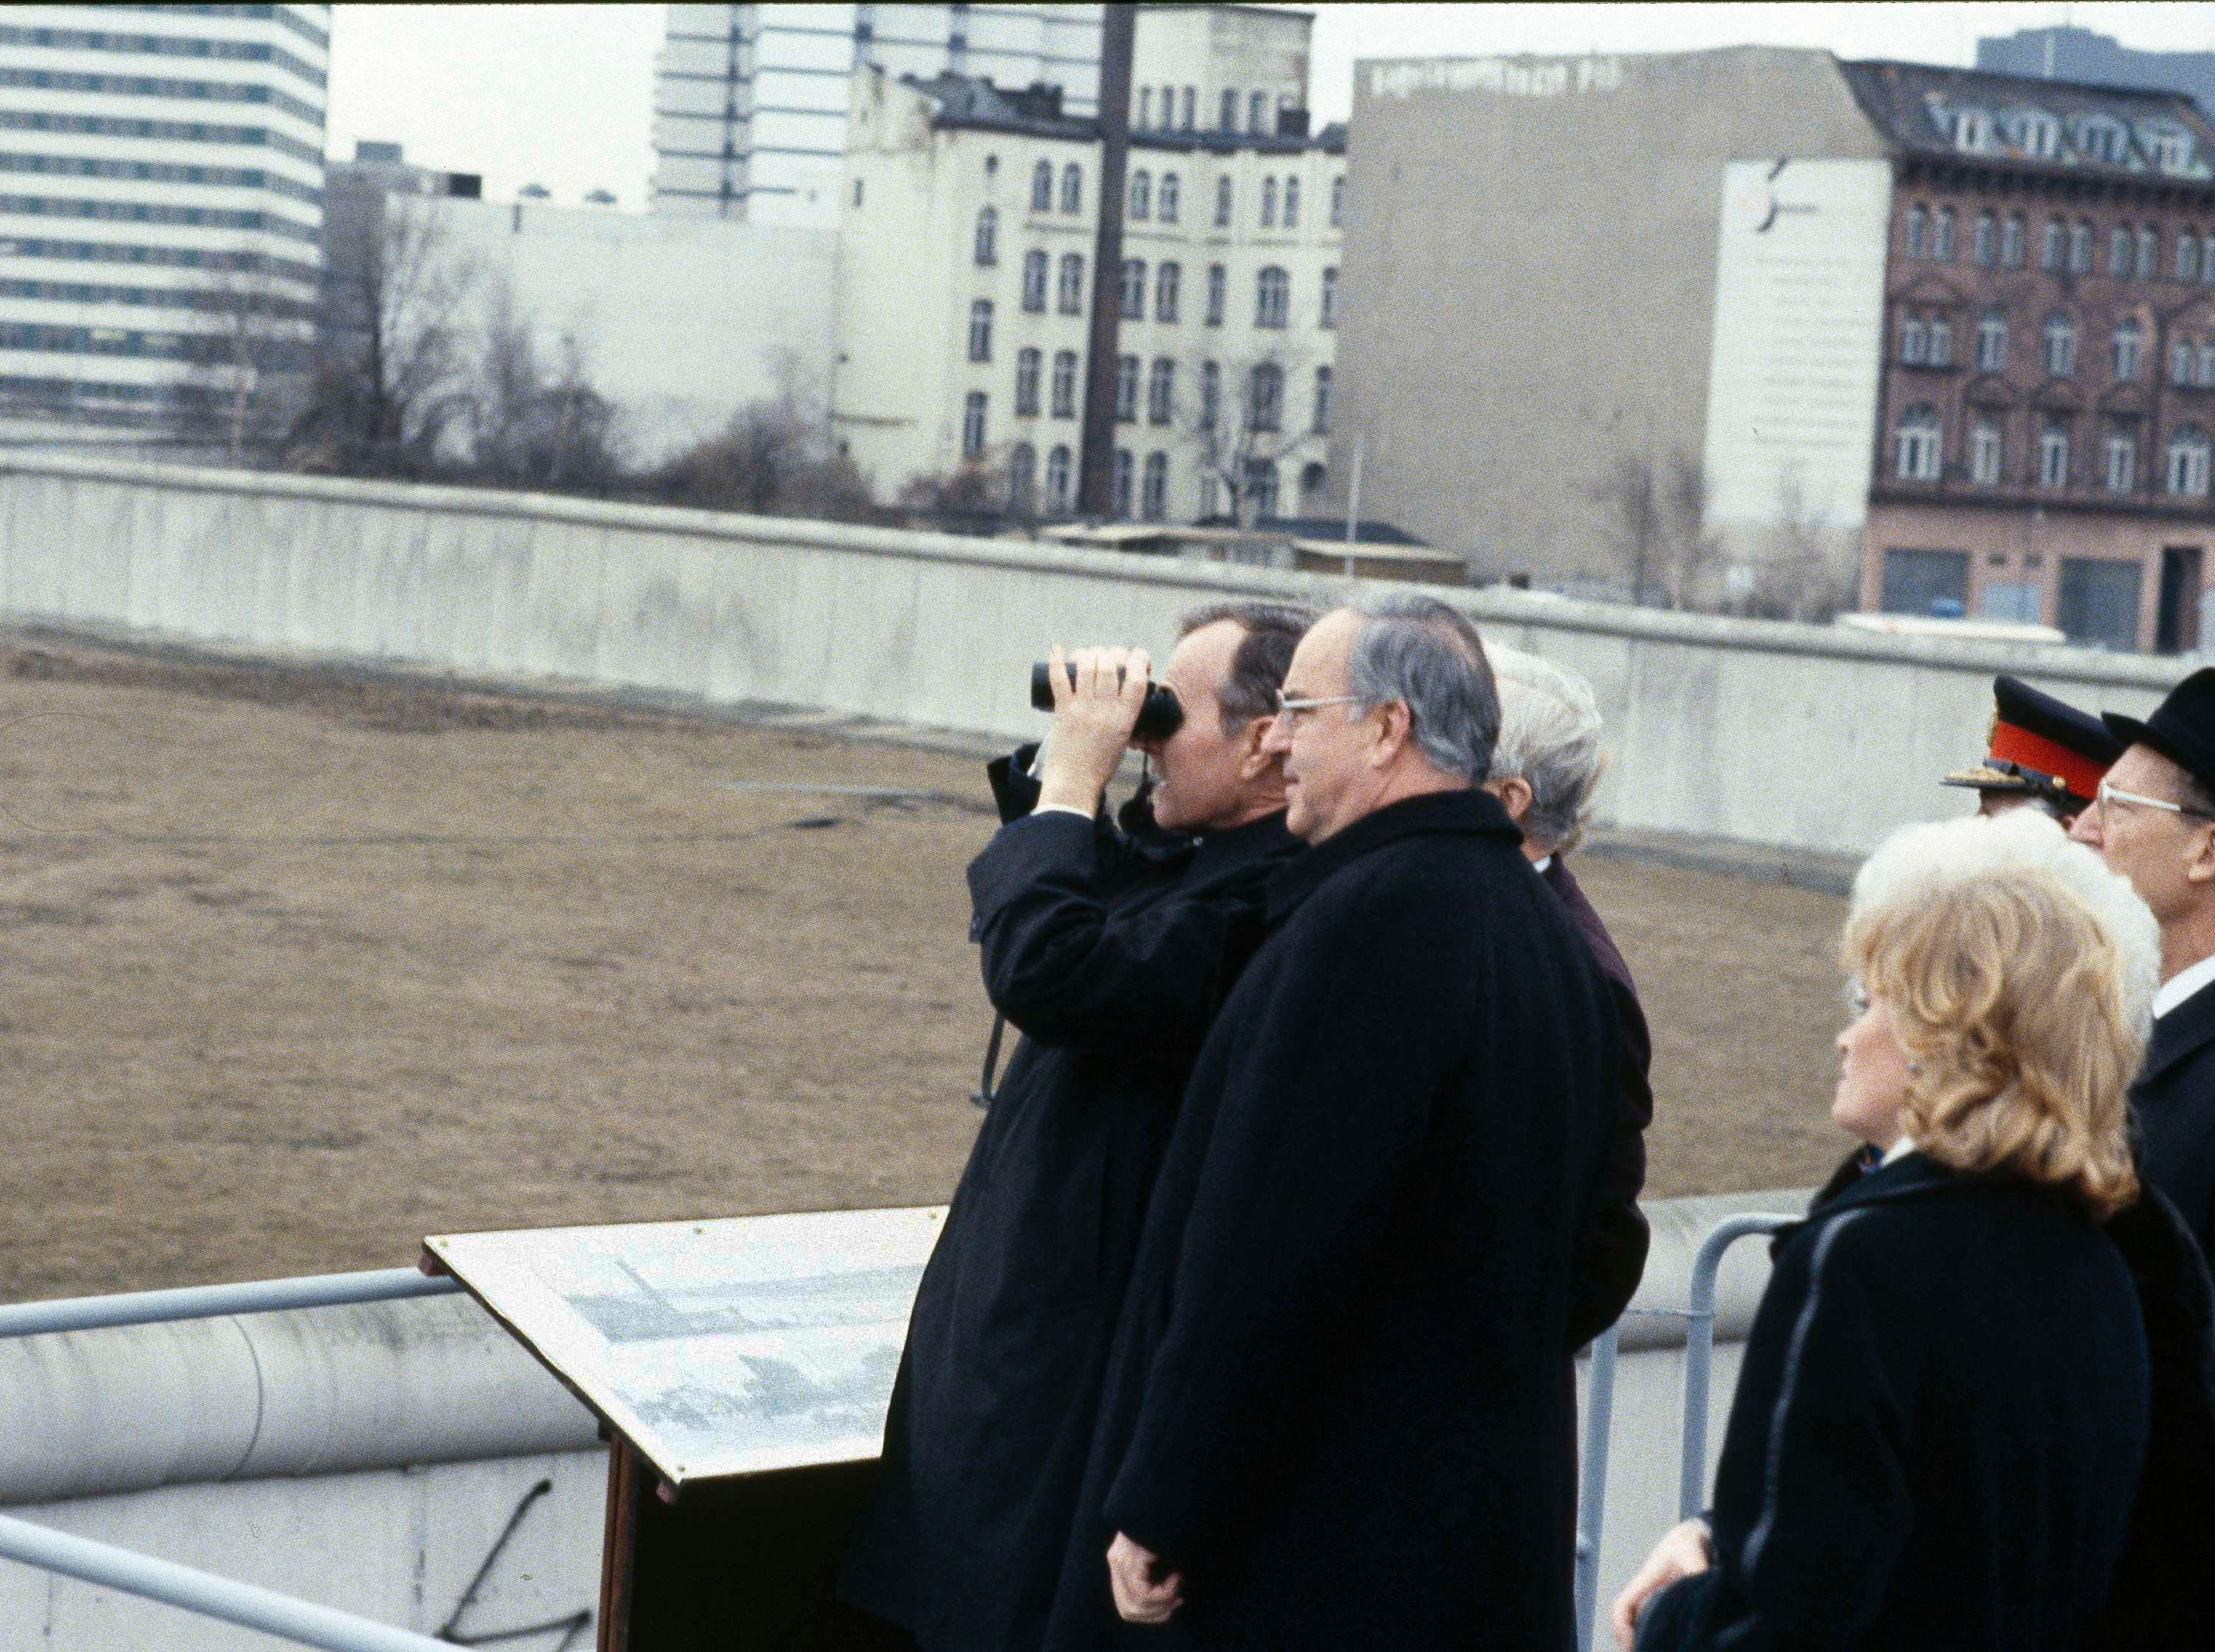 U.S. Vice President George Bush peers through binoculars as he has a look over the Berlin Wall into East Berlin from a stand at West Berlin's Potsdamerplatz, Feb. 1, 1983. Bush is flanked by Berlin Mayor Richard von Weizsaecker, left, and Chancellor Helmut Kohl. The wall is at right.  (AP Photo/Edwin Reichert)